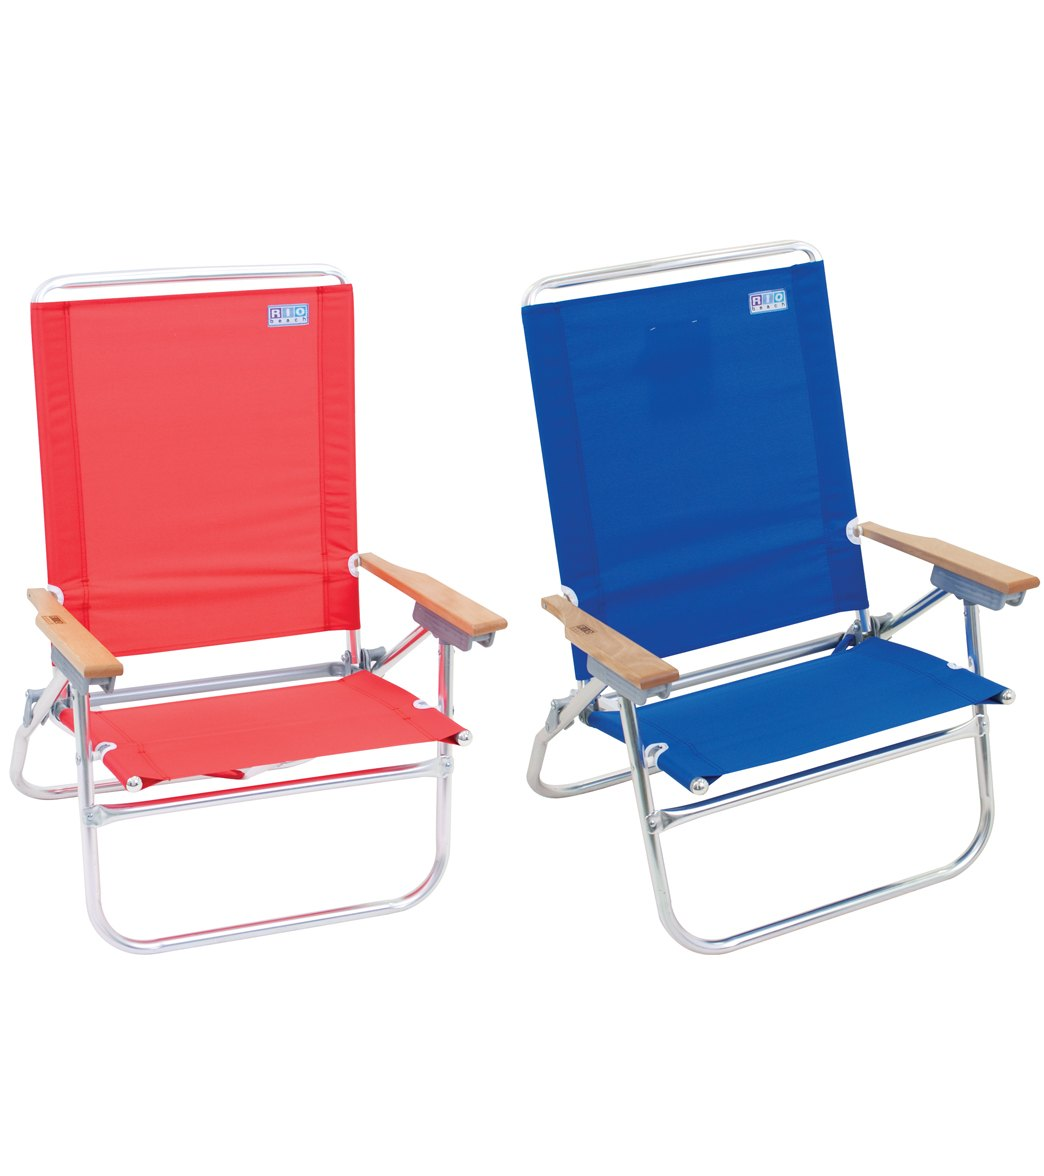 Rio Brands The Easy In Easy Out Beach Chair at SwimOutlet Free Shipping